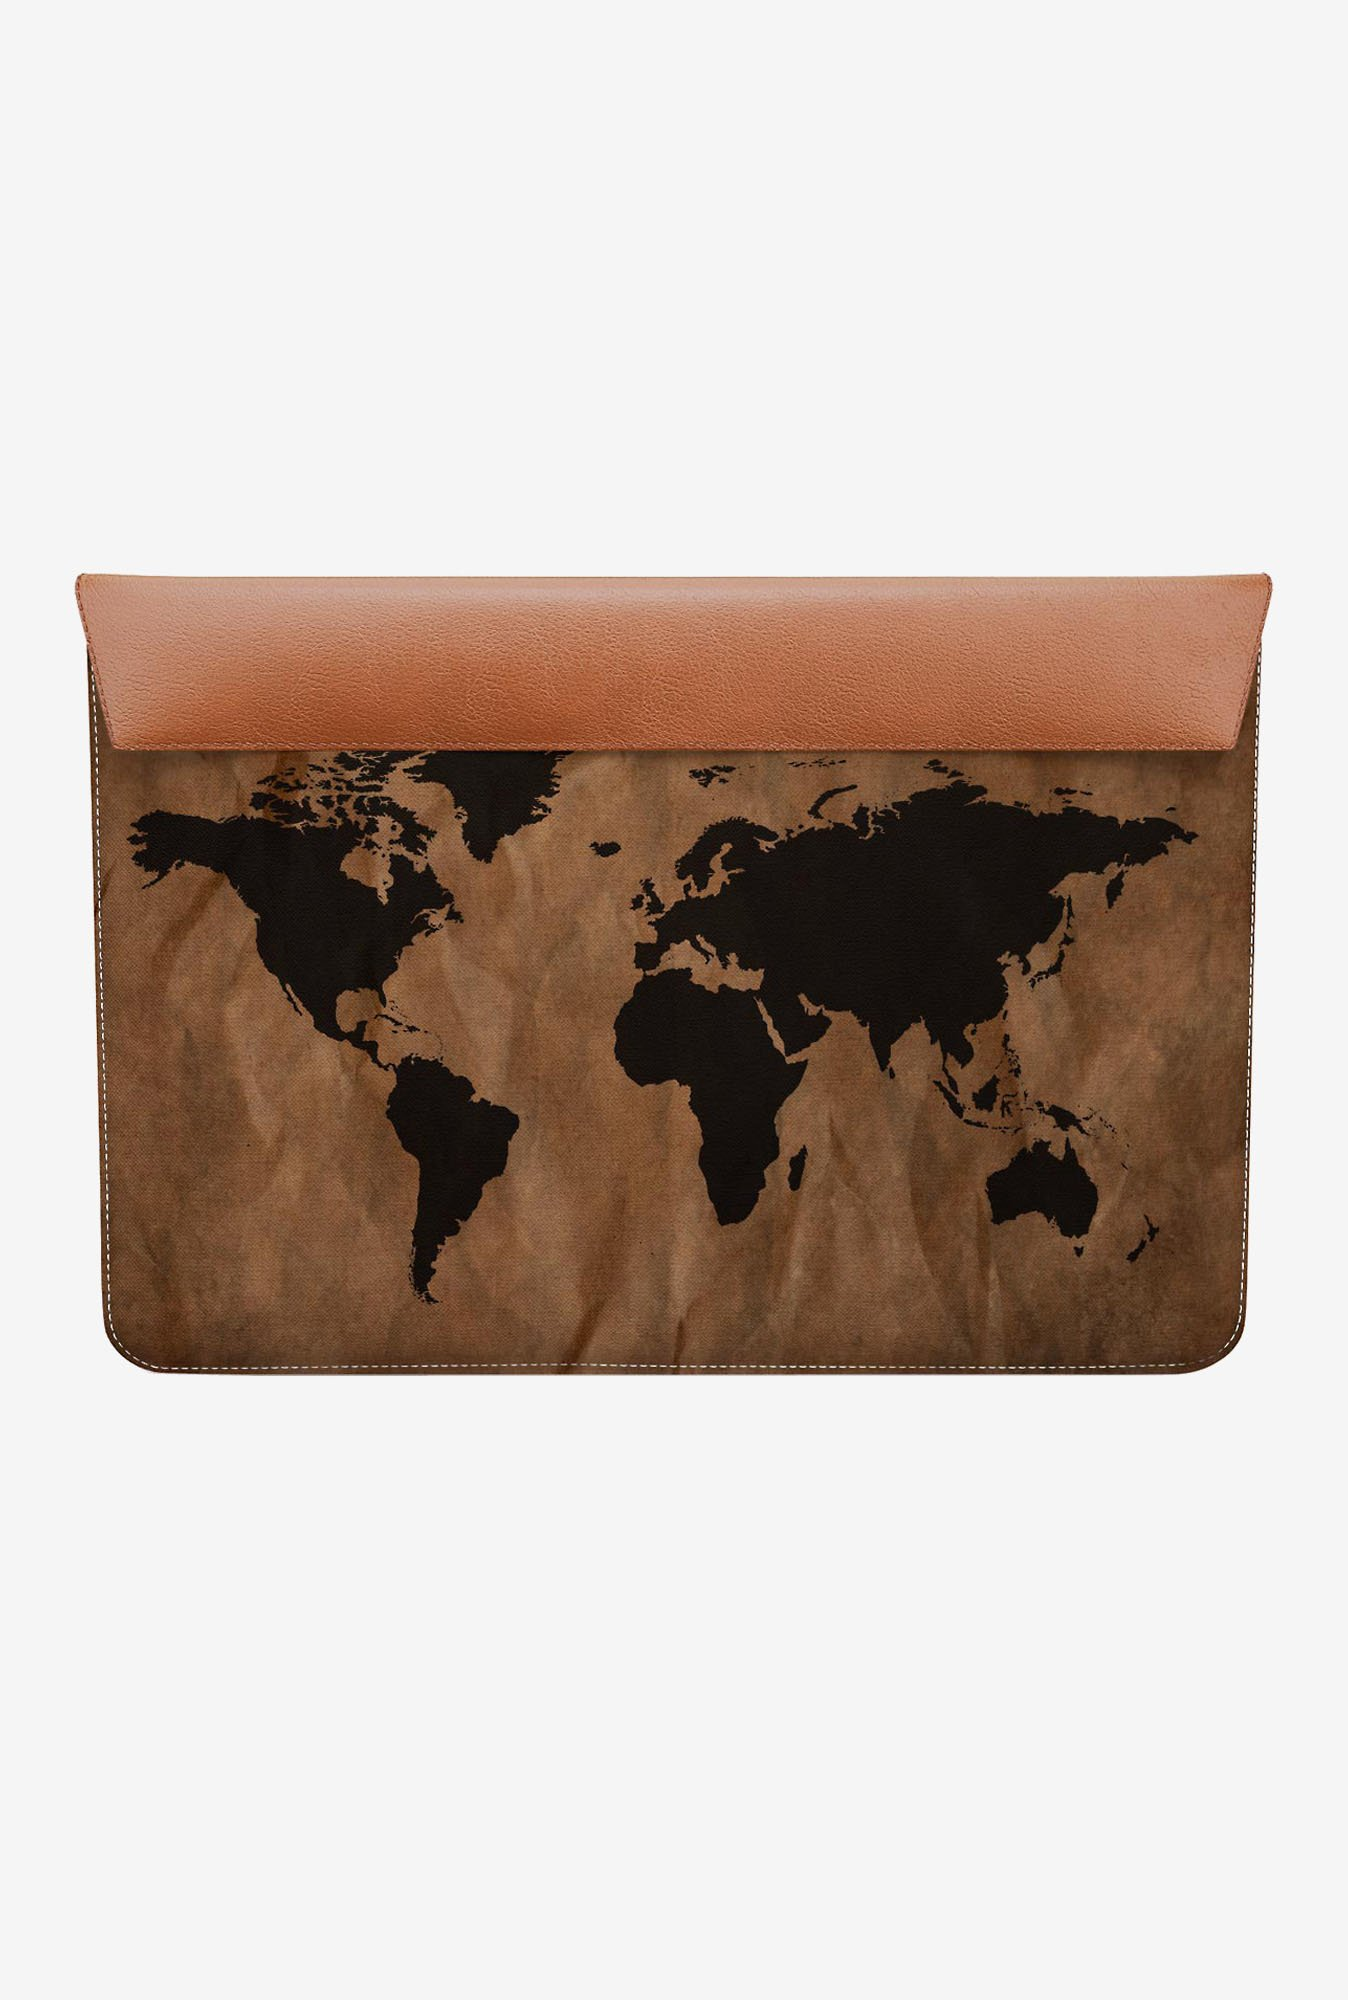 DailyObjects World Map MacBook Air 13 Envelope Sleeve